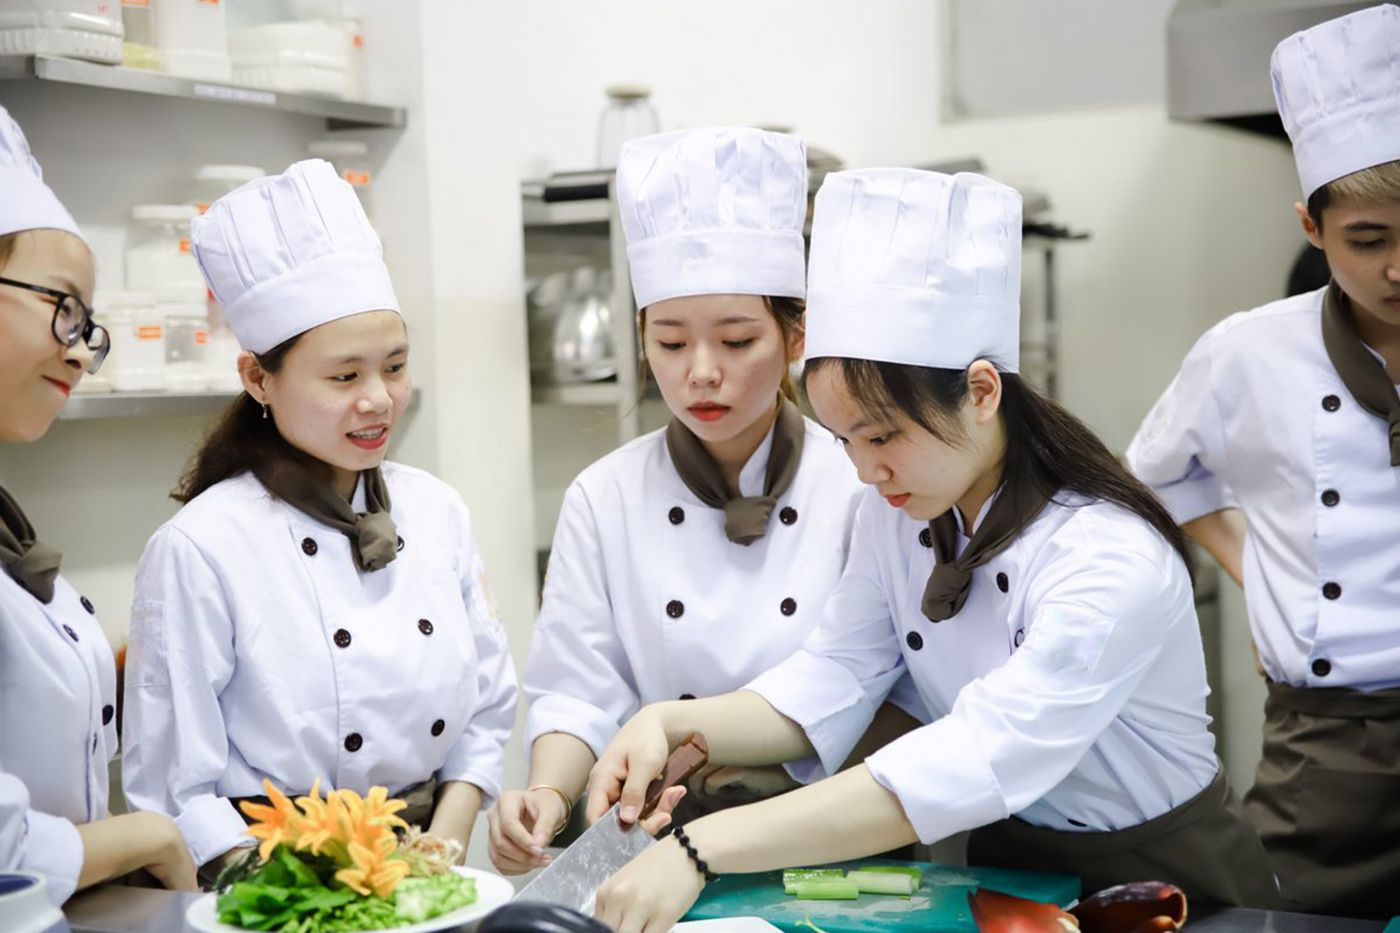 A group of young girls being trained on how to prepare food in a hotel kitchen.